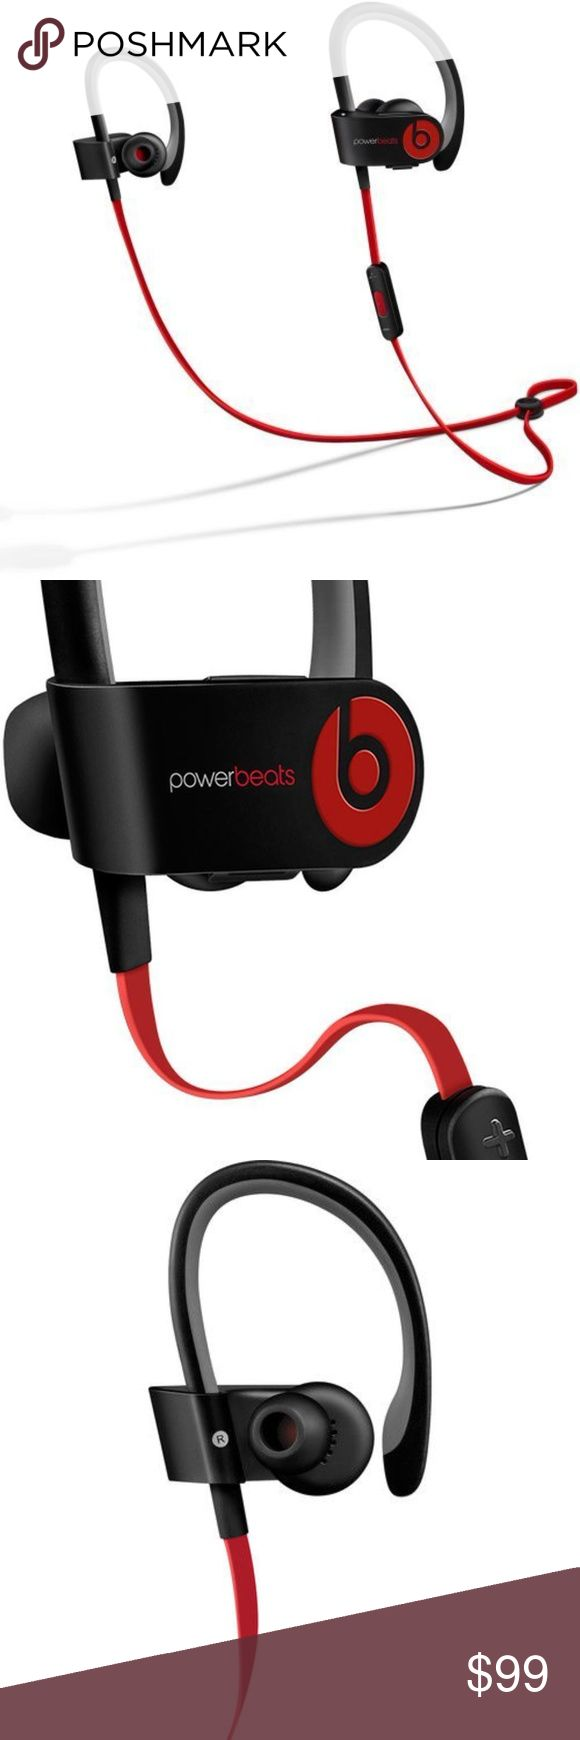 Powerbeats2 Like New- Comes with everything pictured.   Unopened ear pieces.  Beats by Dr Dre - Powerbeats² : These workout headphones are crafted to keep up with your active routine. The no-slip design of the call answer button ensures phone calls won't be missed, and music can be easily cycled through. Connect Via Bluetooth Beats by Dre Accessories